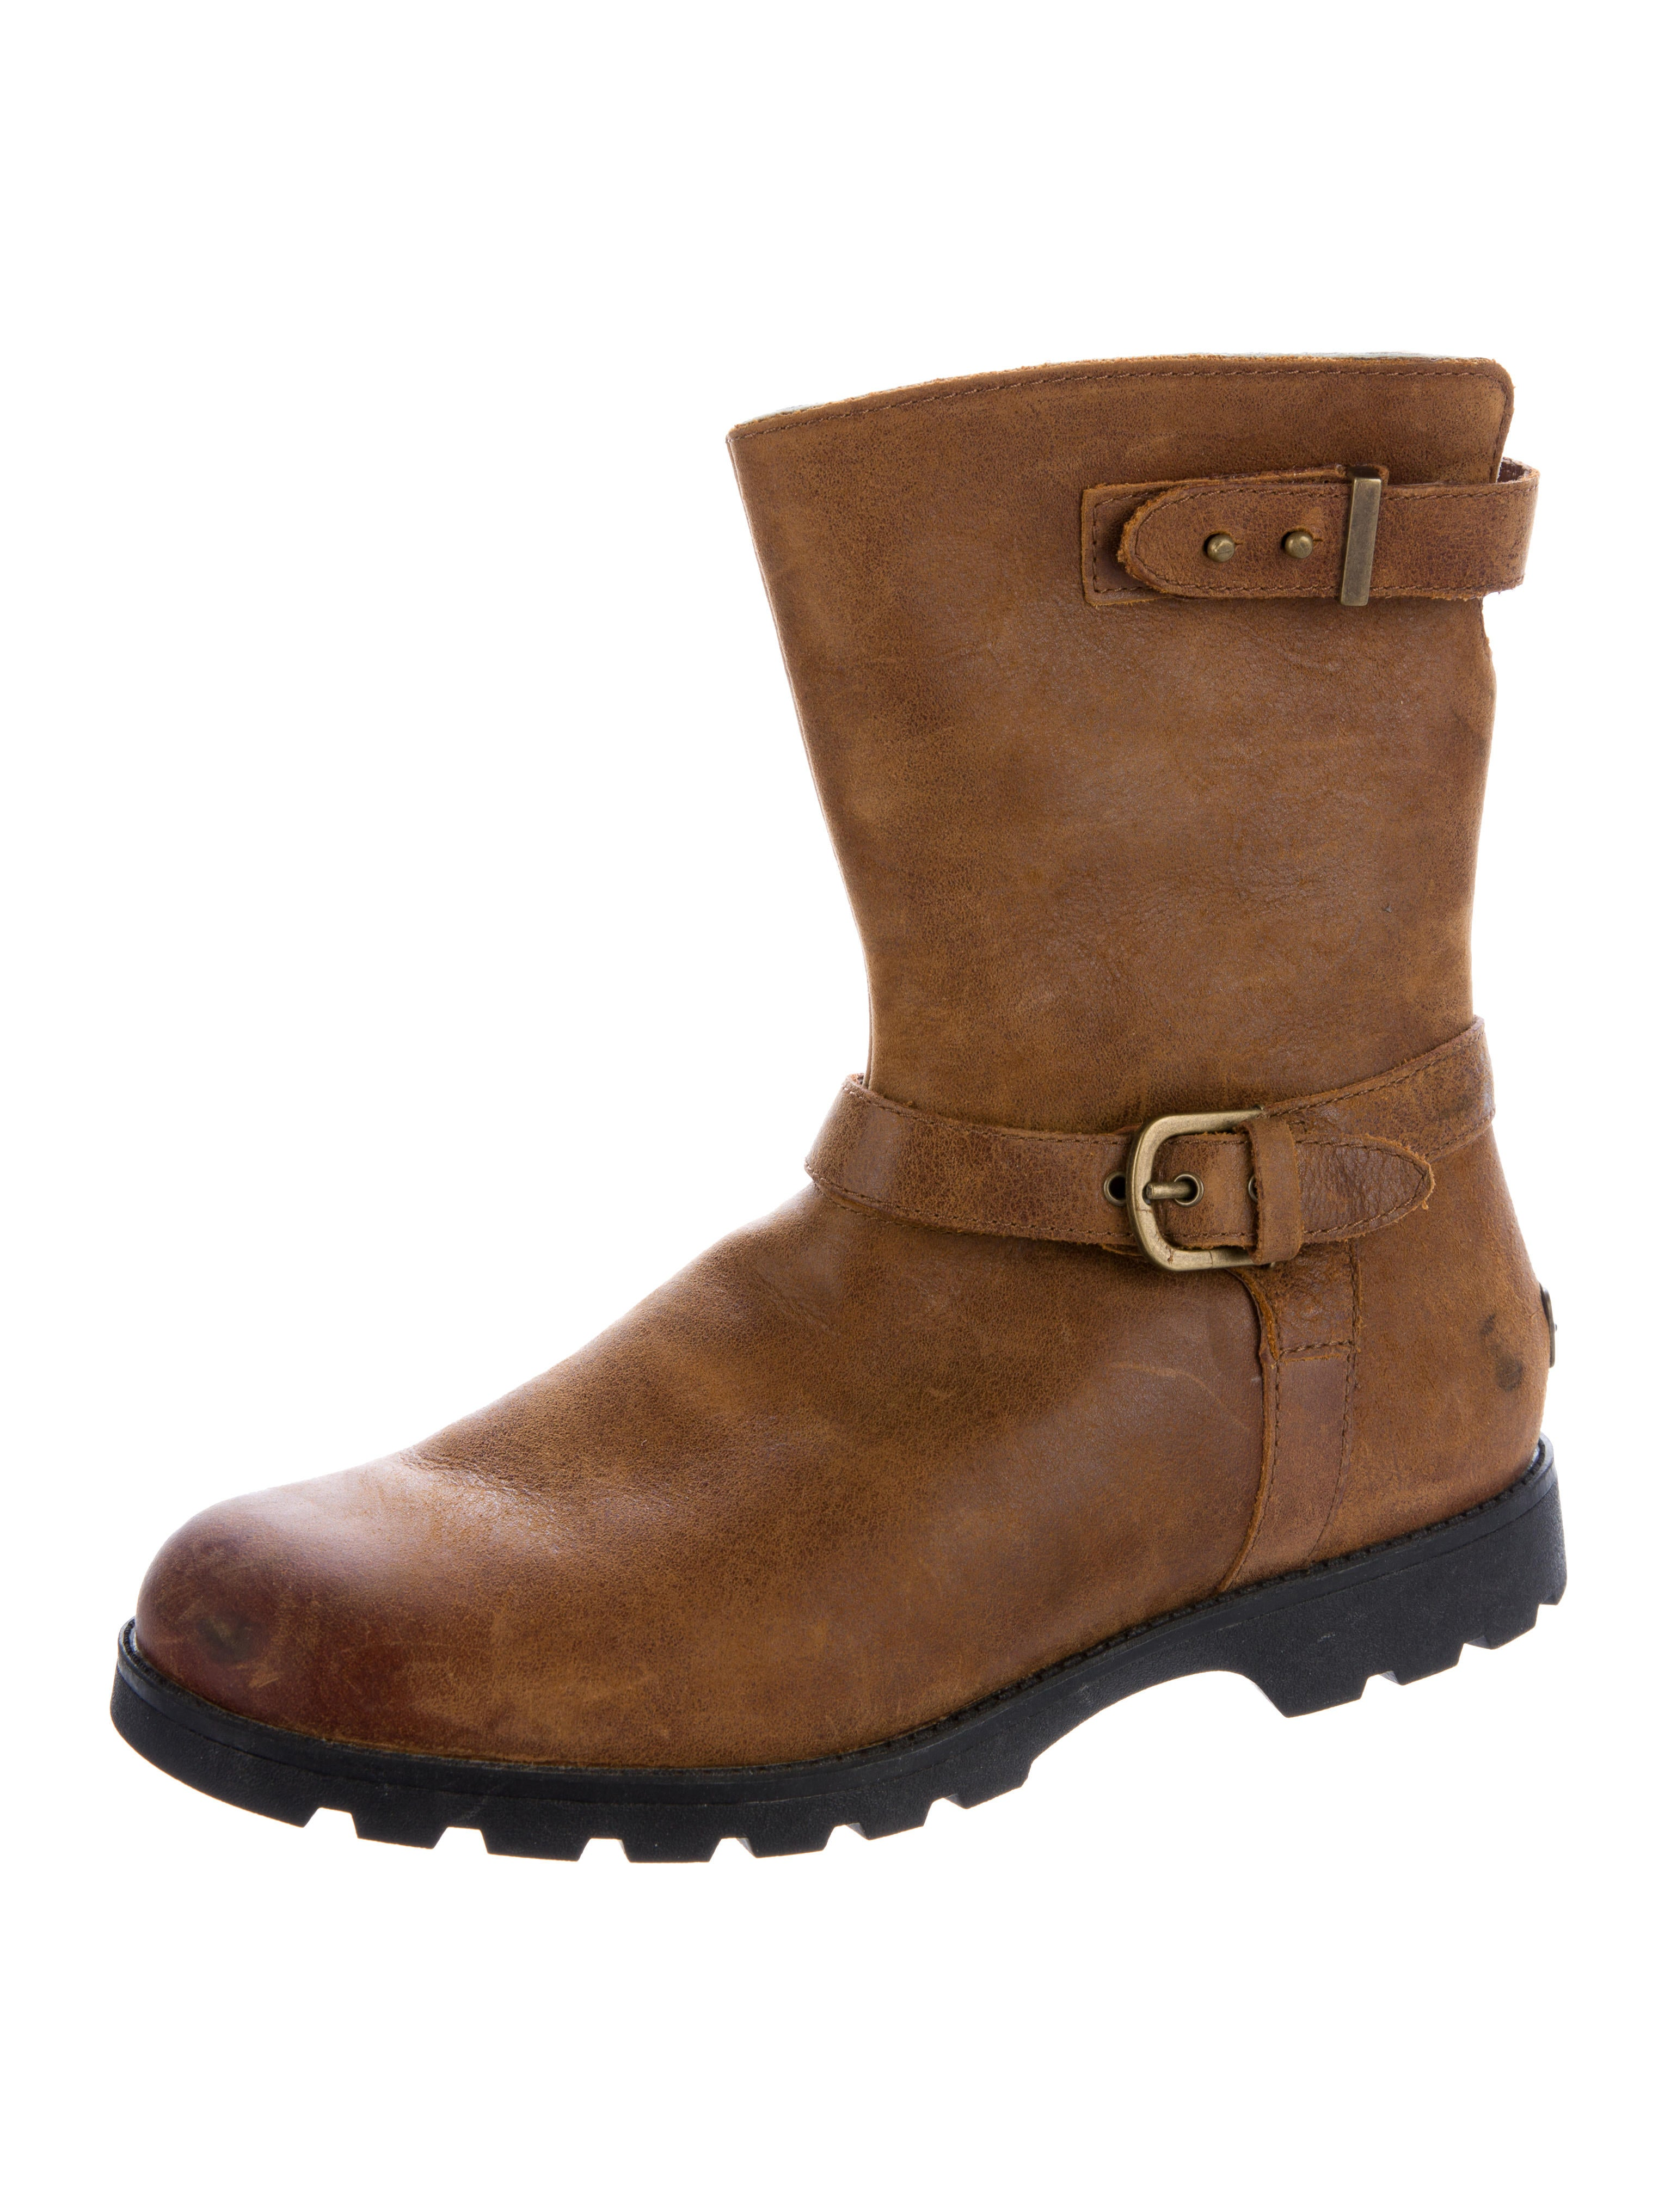 ugg australia shearling ankle boots shoes wuugg22086